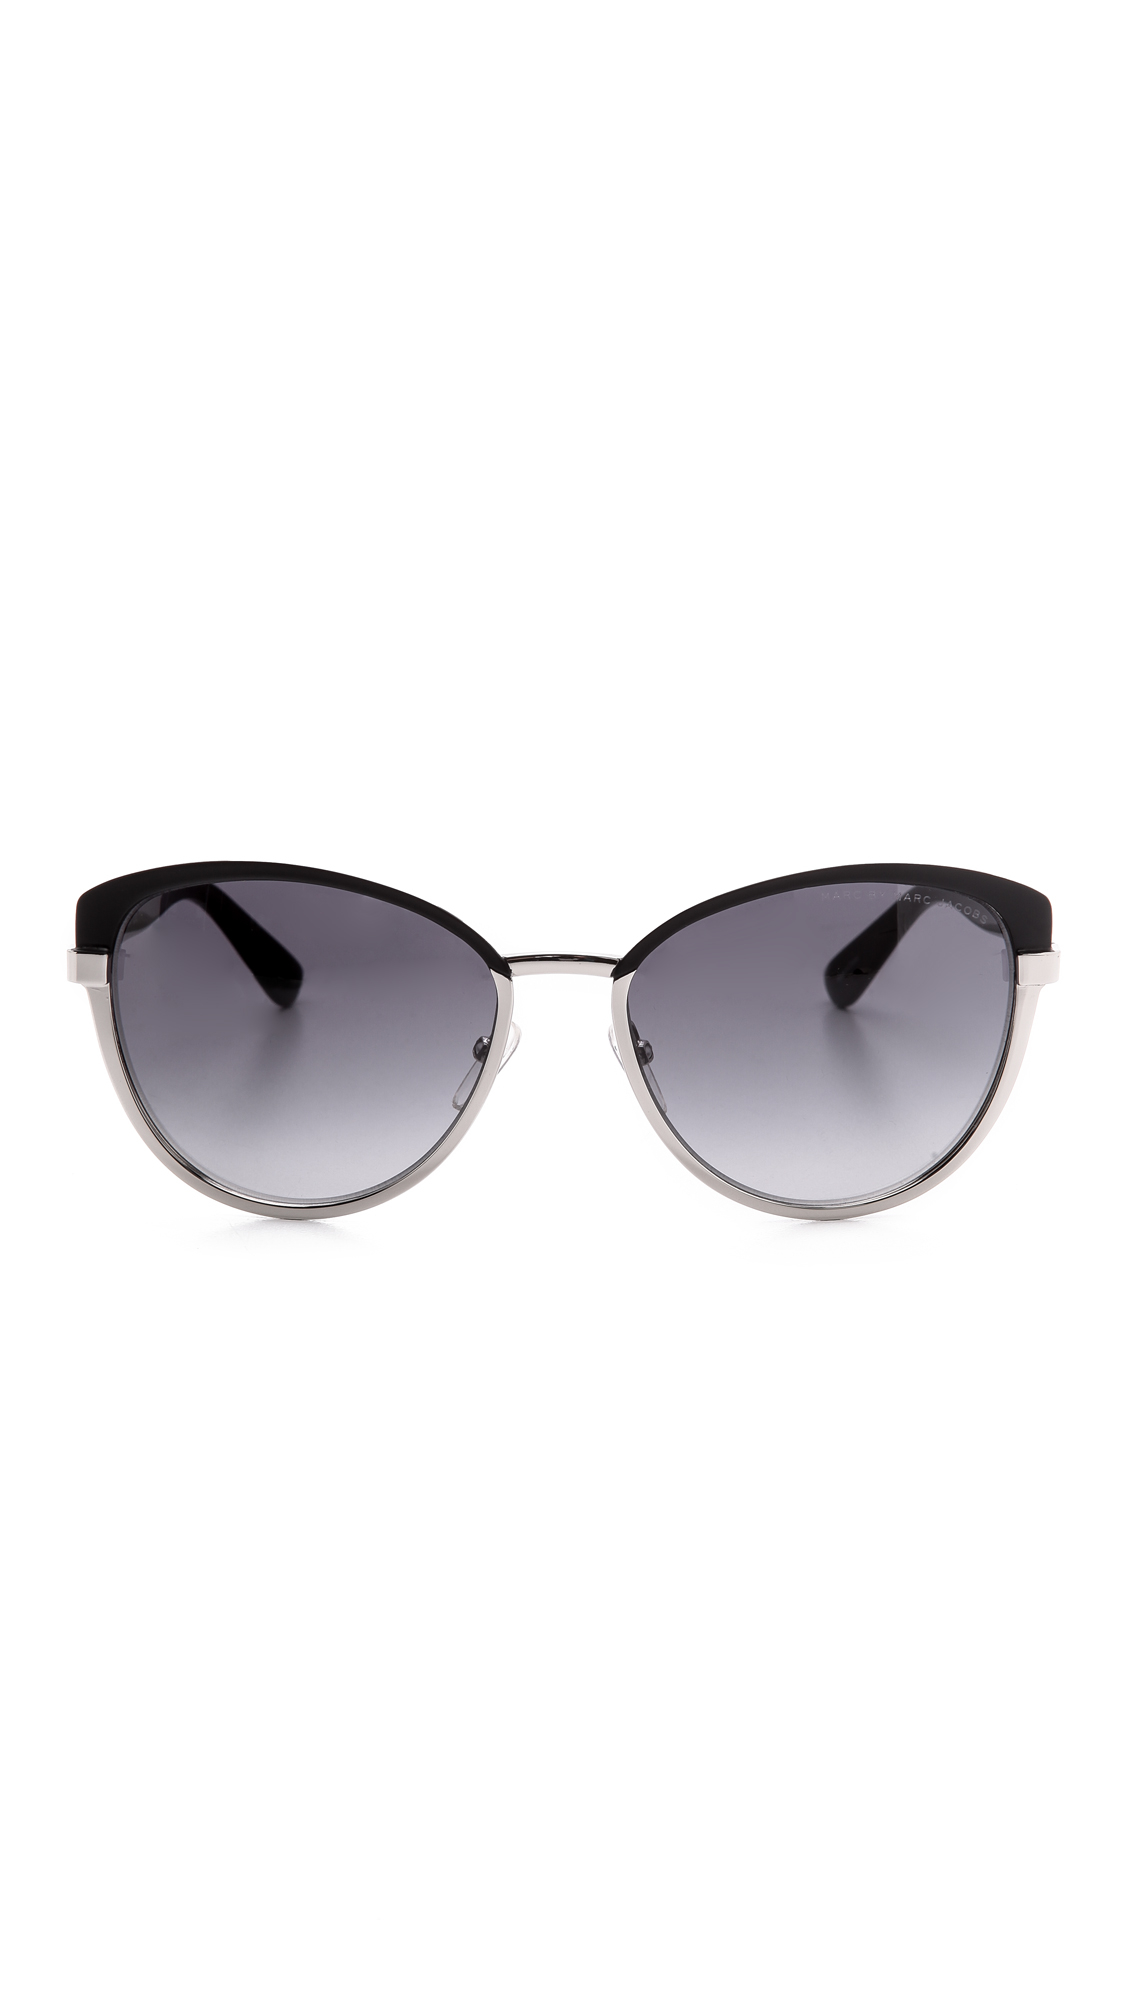 Marc By Marc Jacobs Two Tone Cat Eye Sunglasses - Gold/brown Gradient in Grey